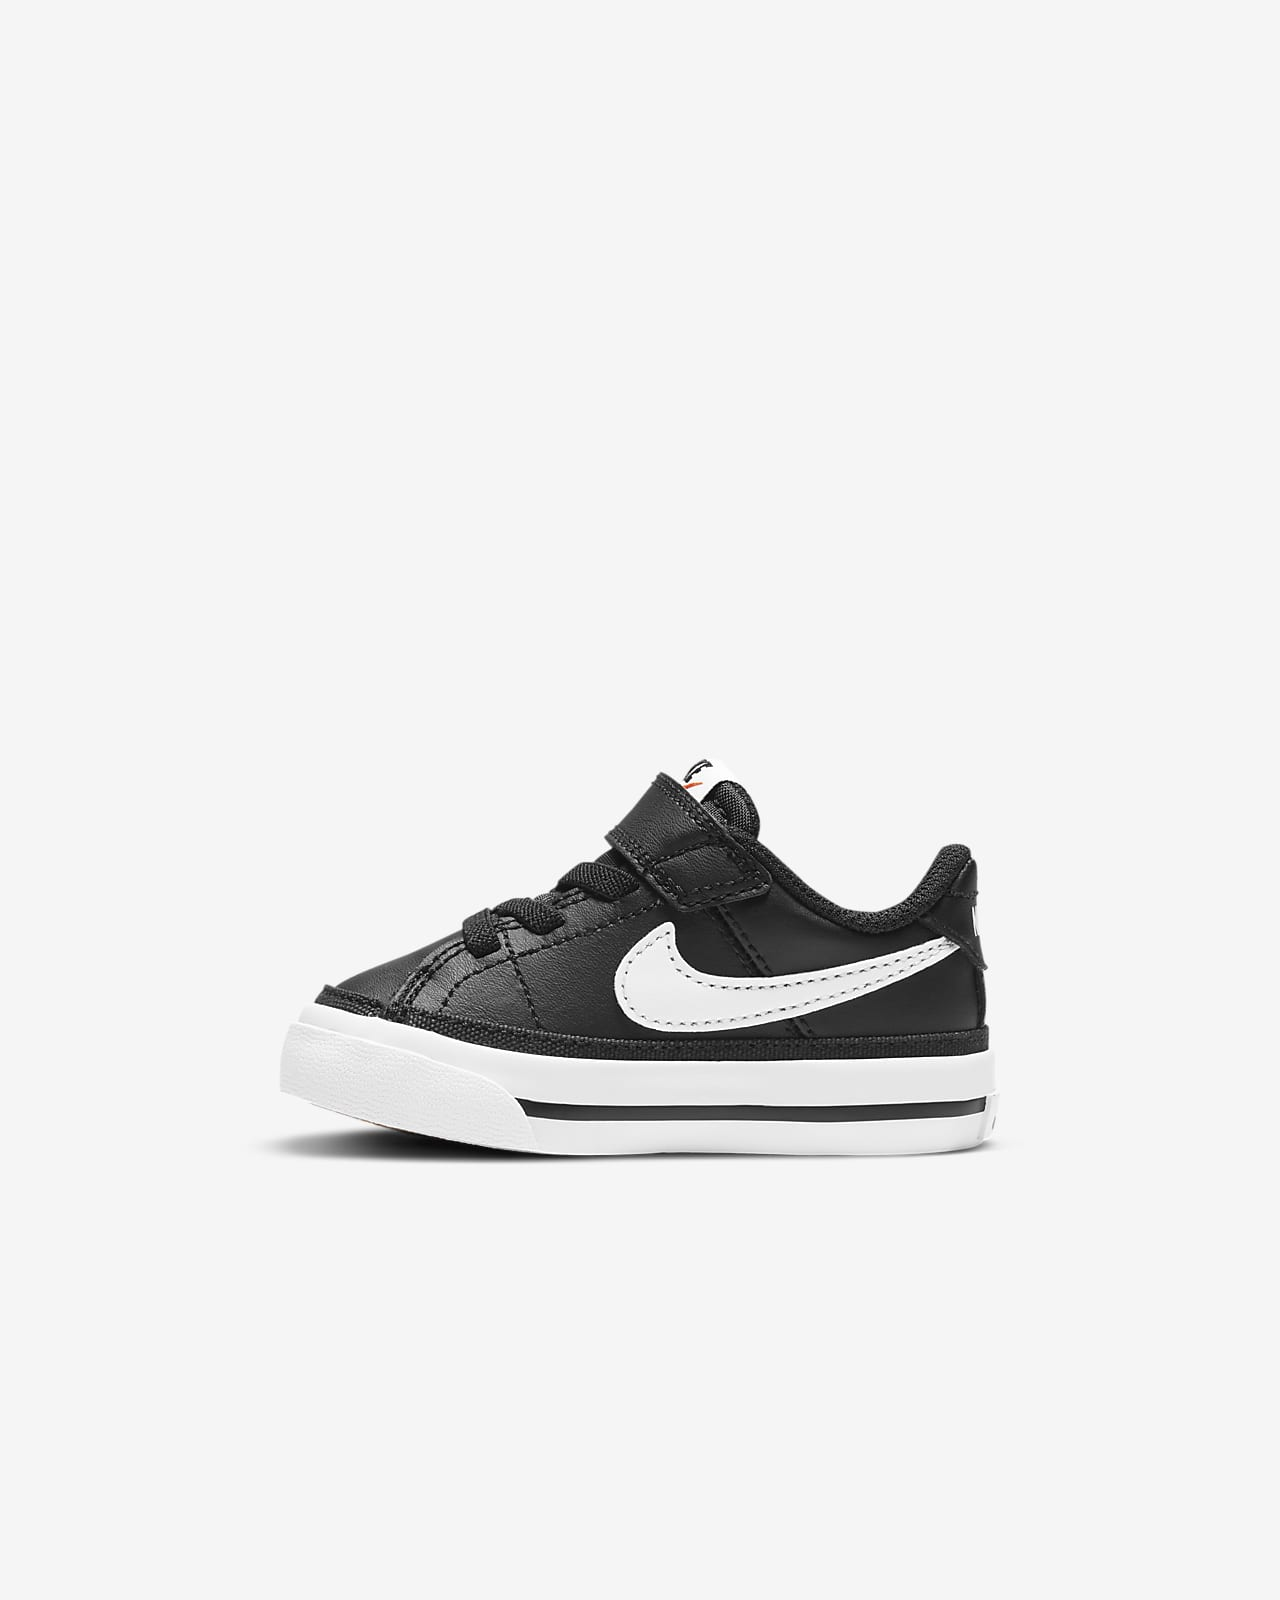 NikeCourt Legacy Baby and Toddler Shoe